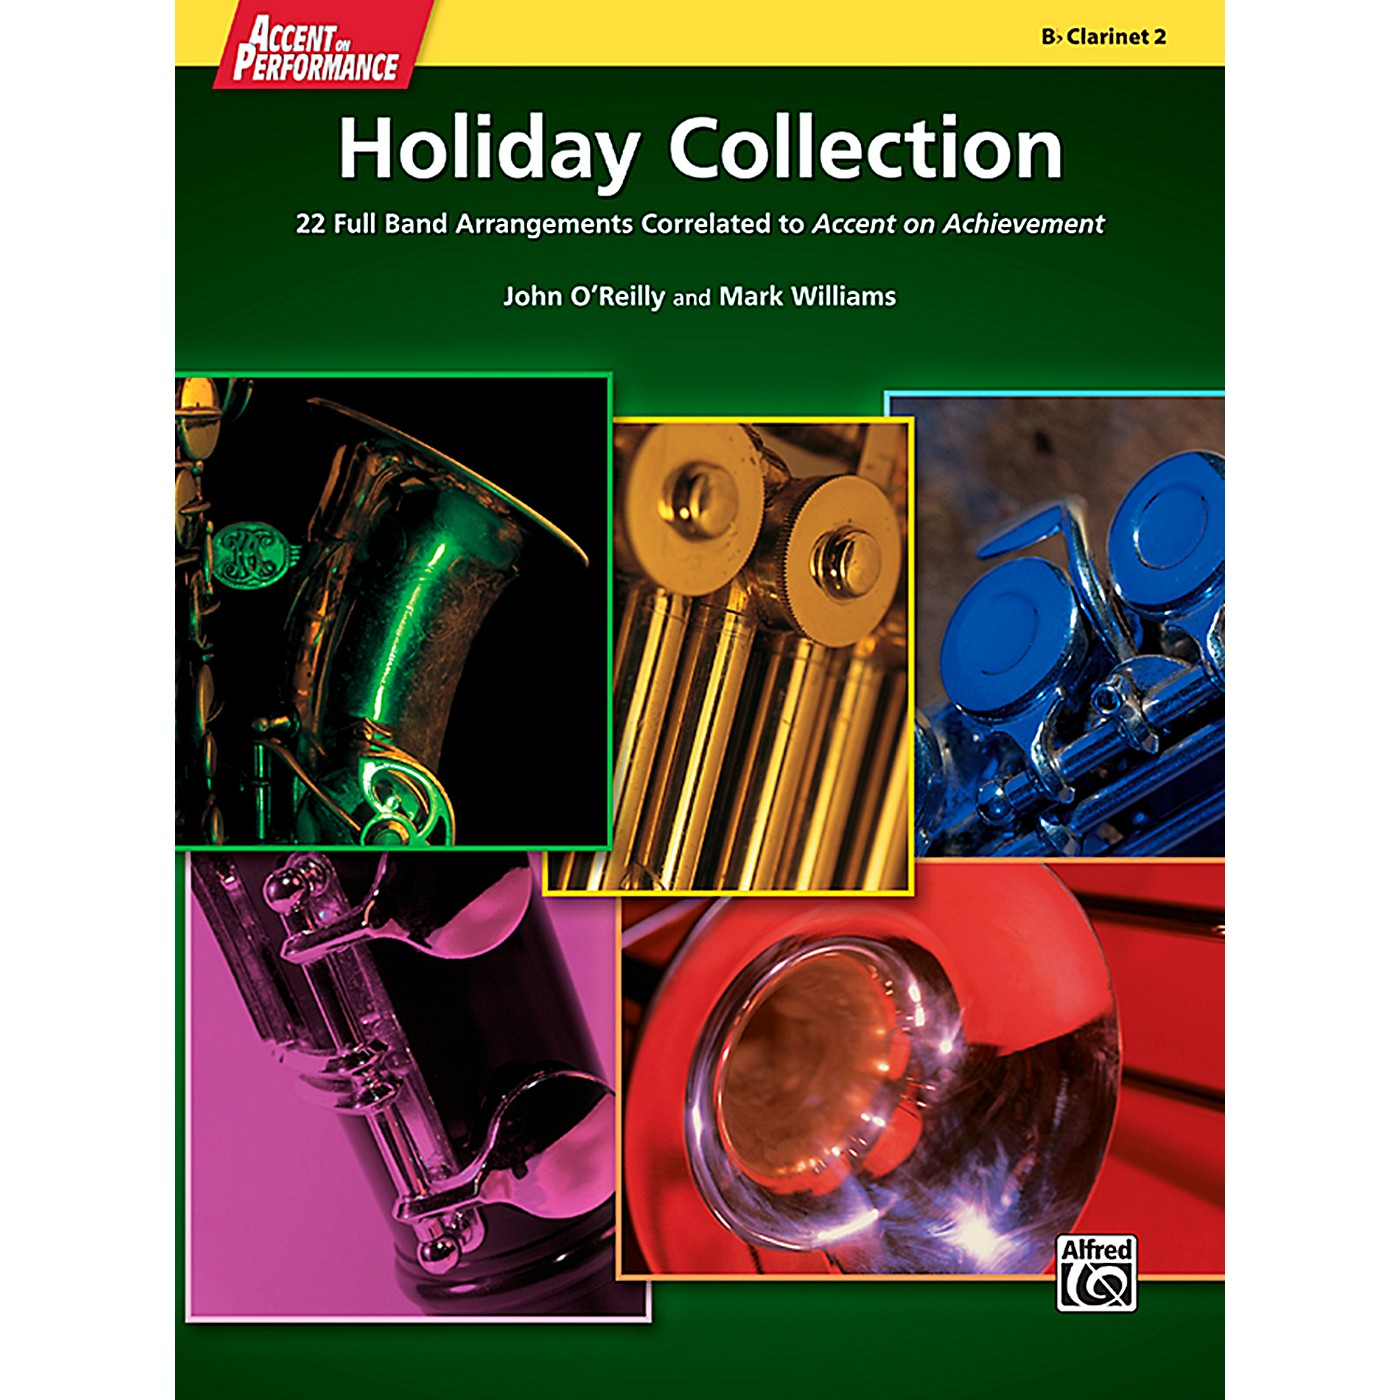 Alfred Accent on Performance Holiday Collection Clarinet 2 Book thumbnail